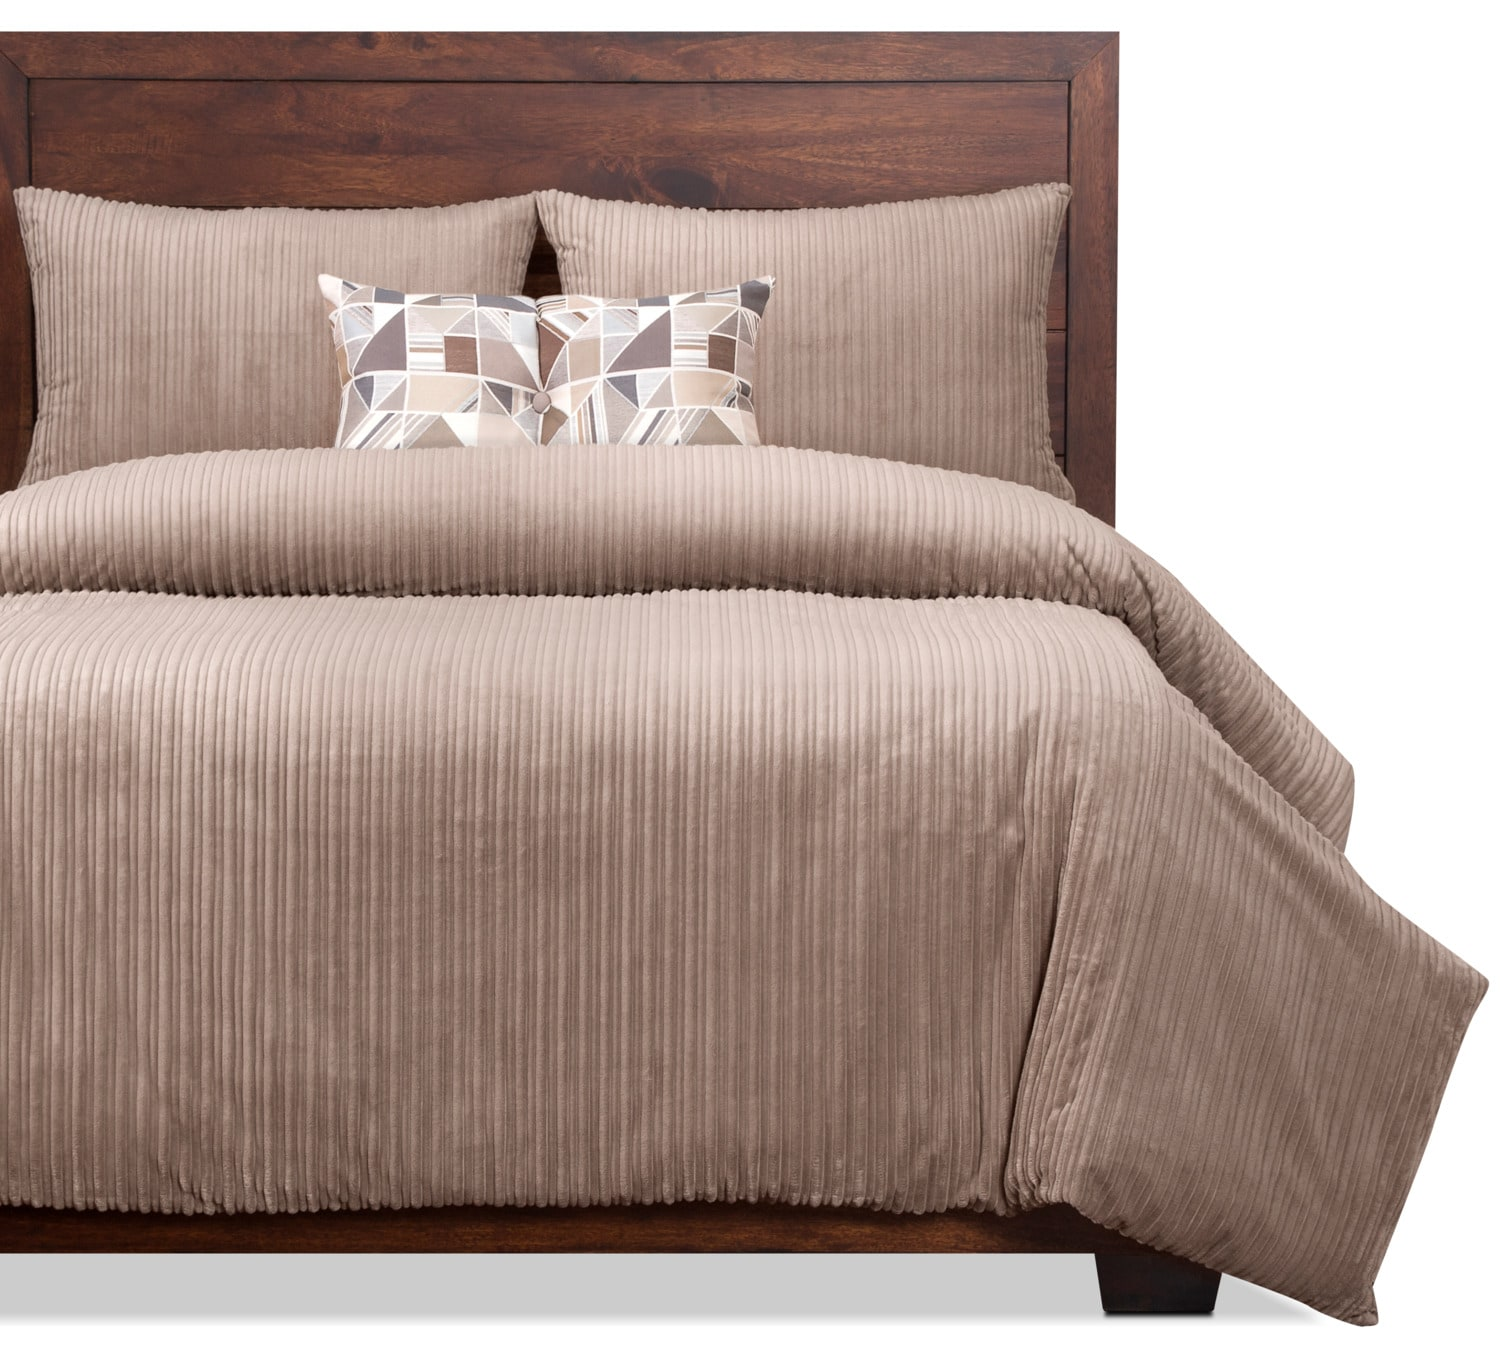 Mattresses and Bedding - Downy Taupe 3-Piece Twin Duvet Cover Set